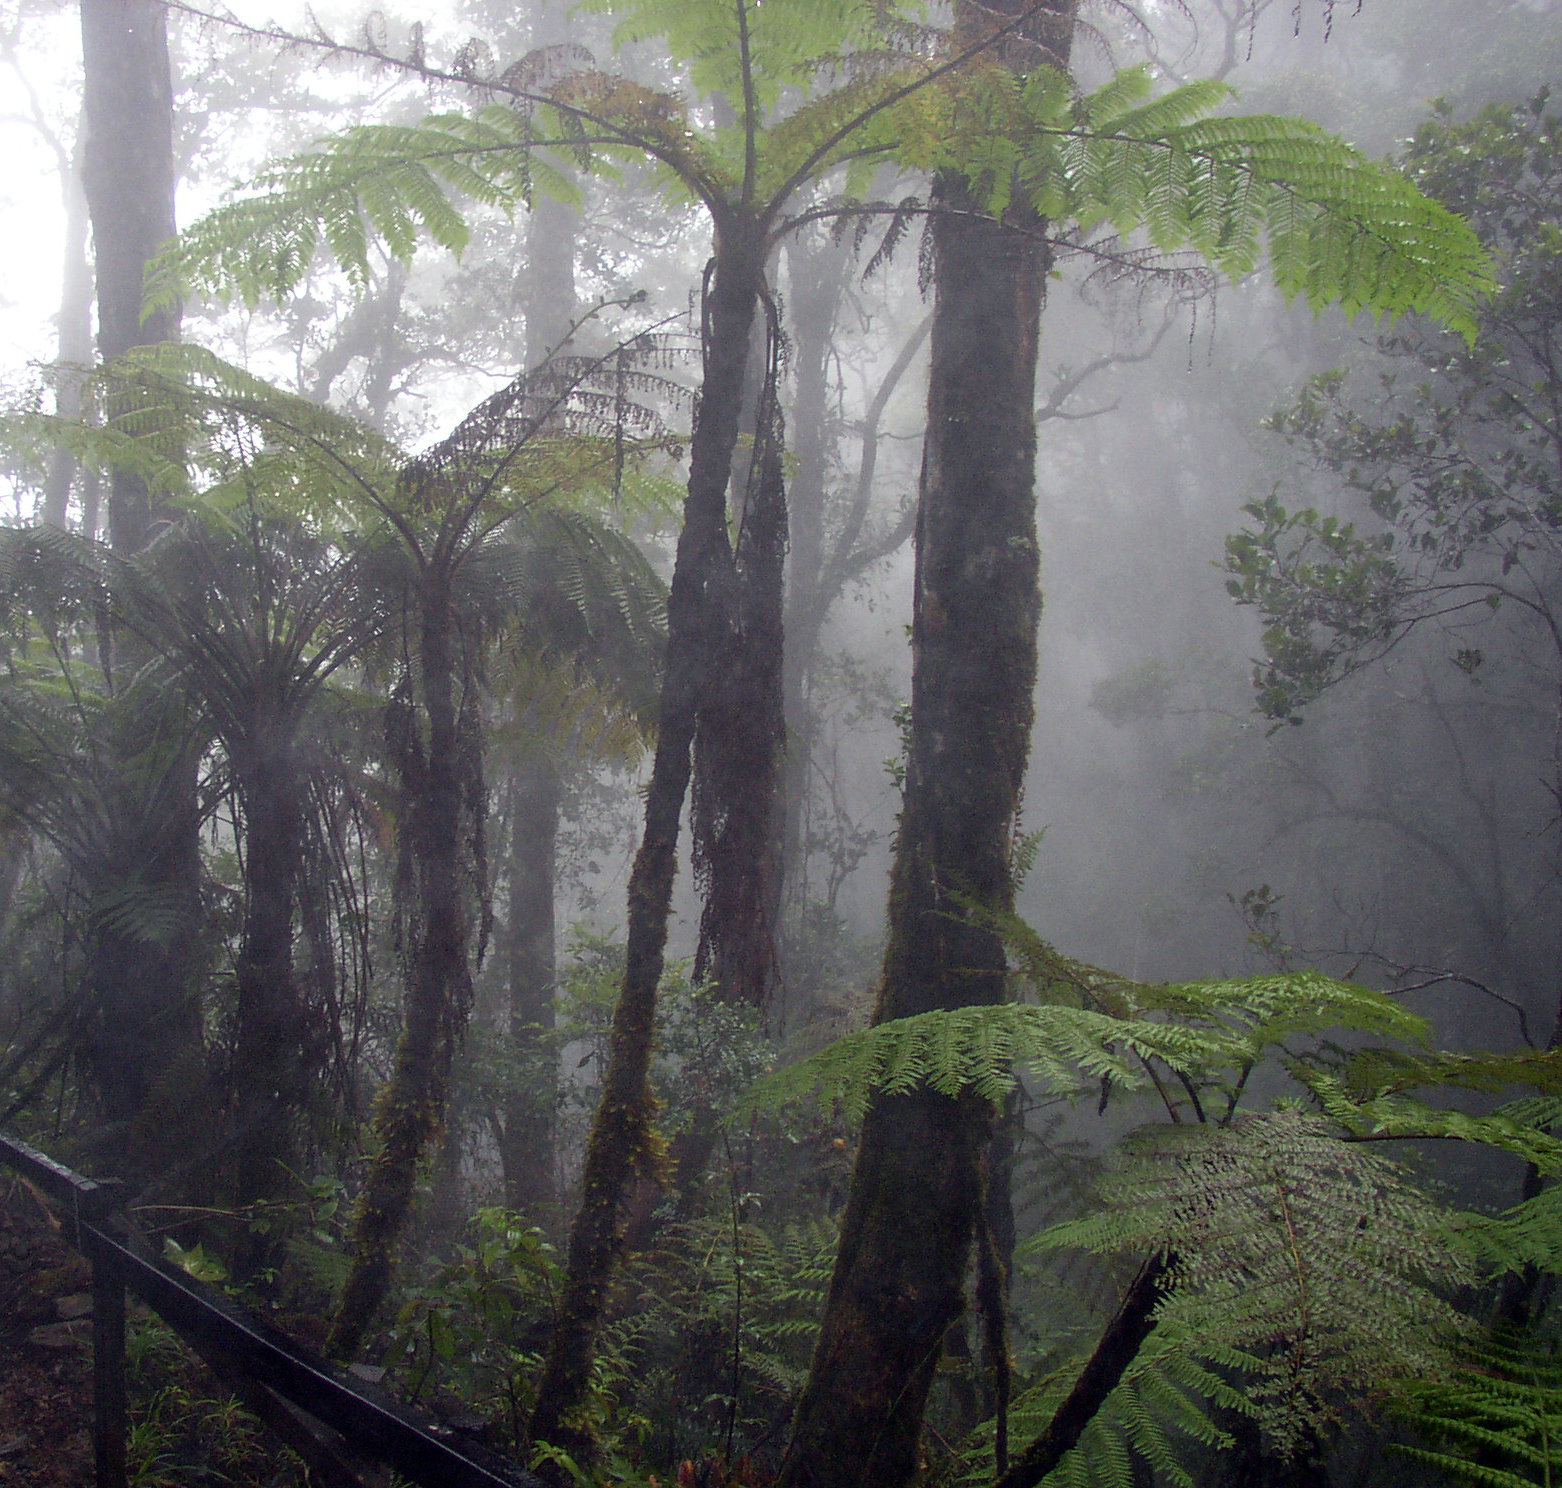 http://fr.academic.ru/pictures/frwiki/67/Cloud_forest_mount_kinabalu.jpg